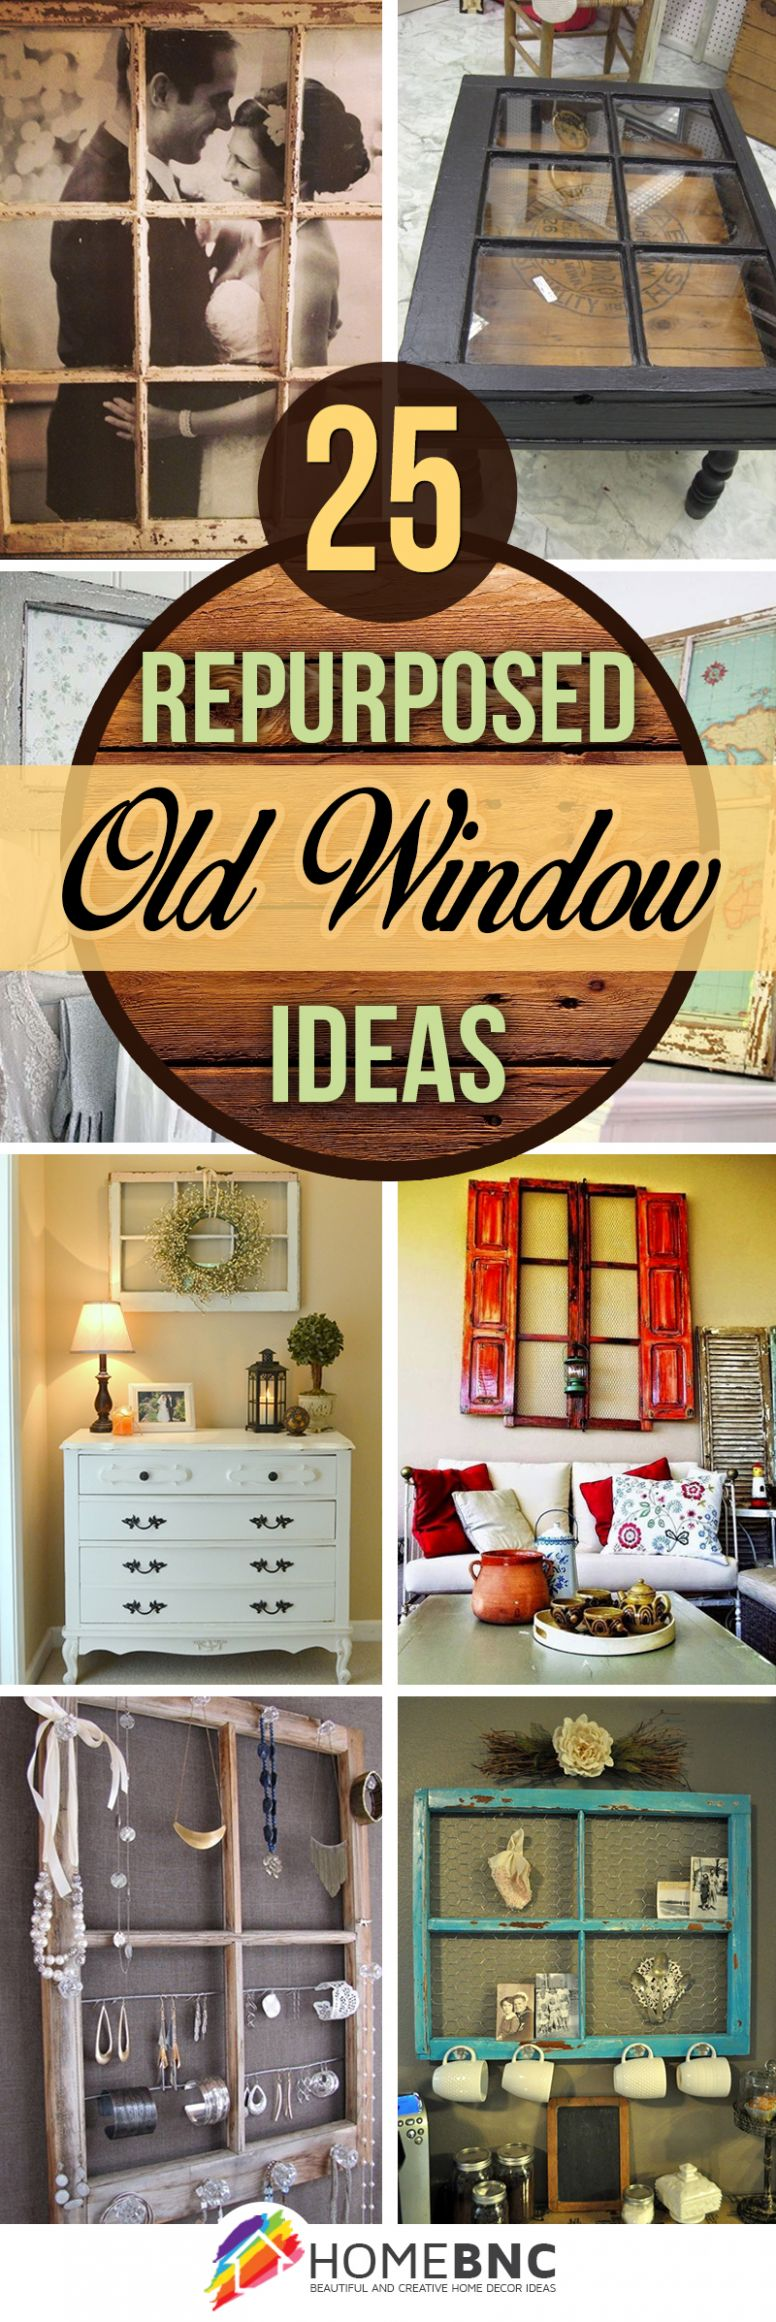 11 Best Repurposed Old Window Ideas and Designs for 11 - window ideas home decor